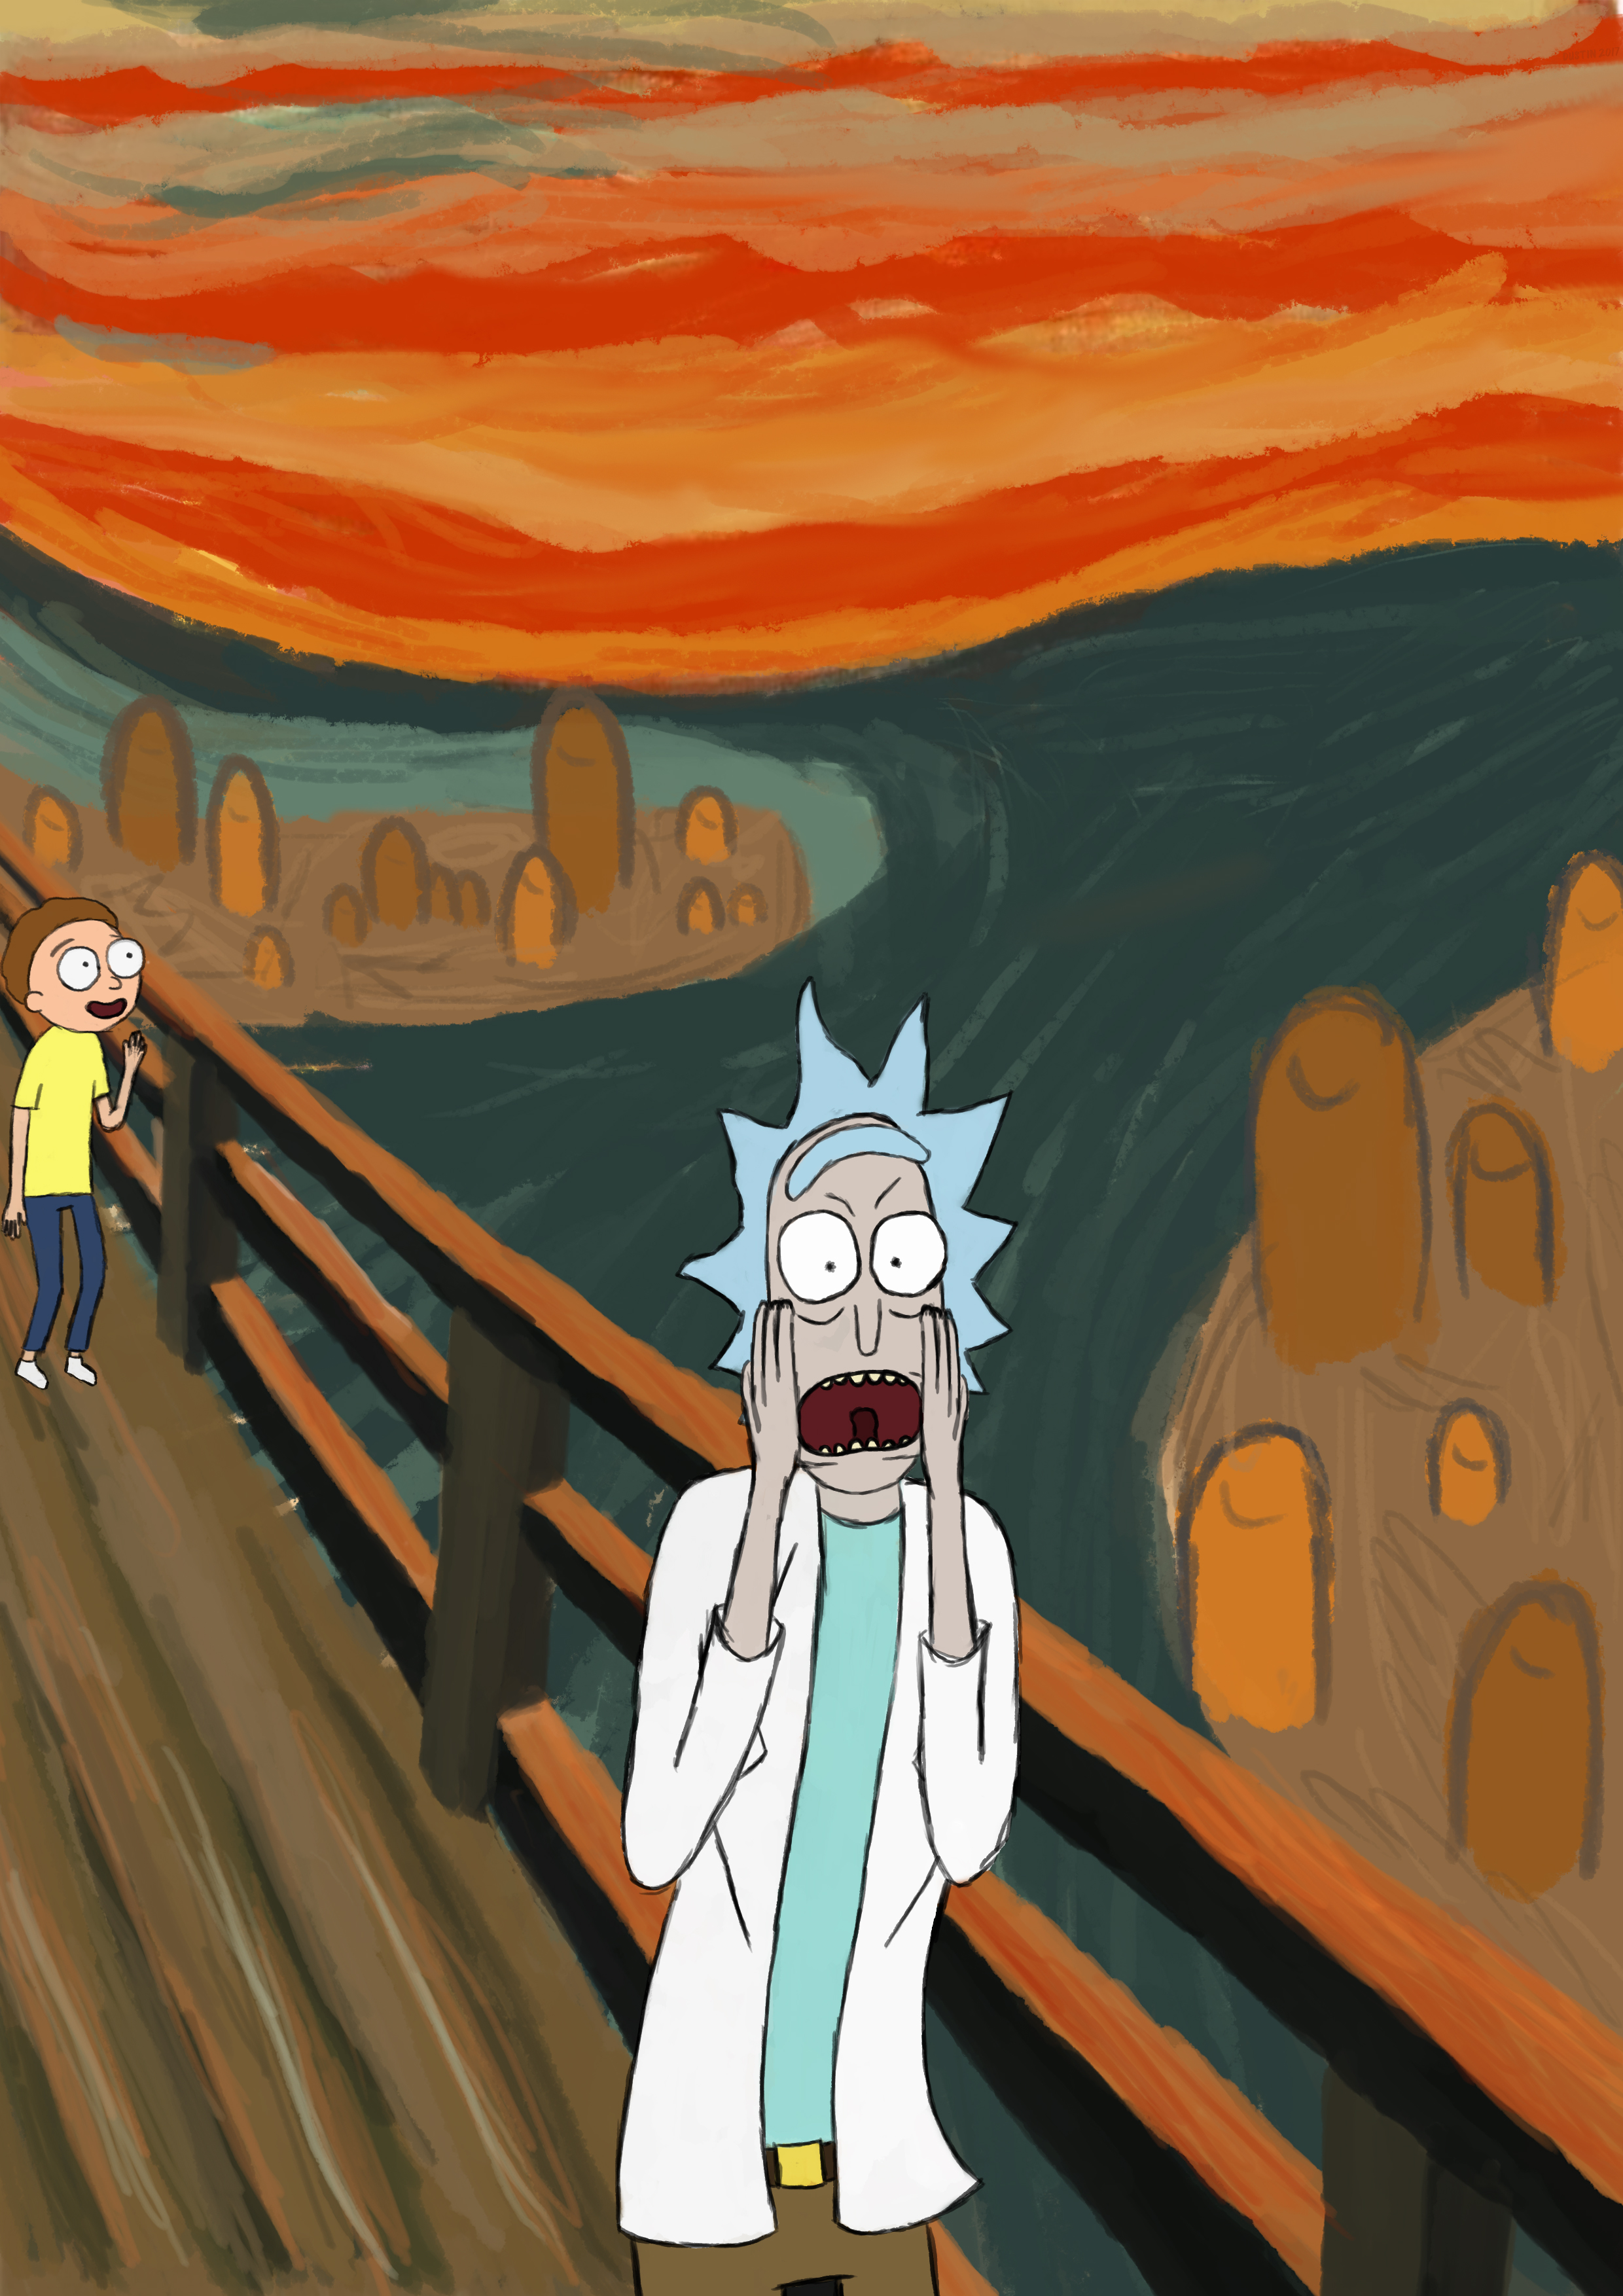 Perks At Work >> Rick and Morty - THE SCREAM by Strangerboii on Newgrounds